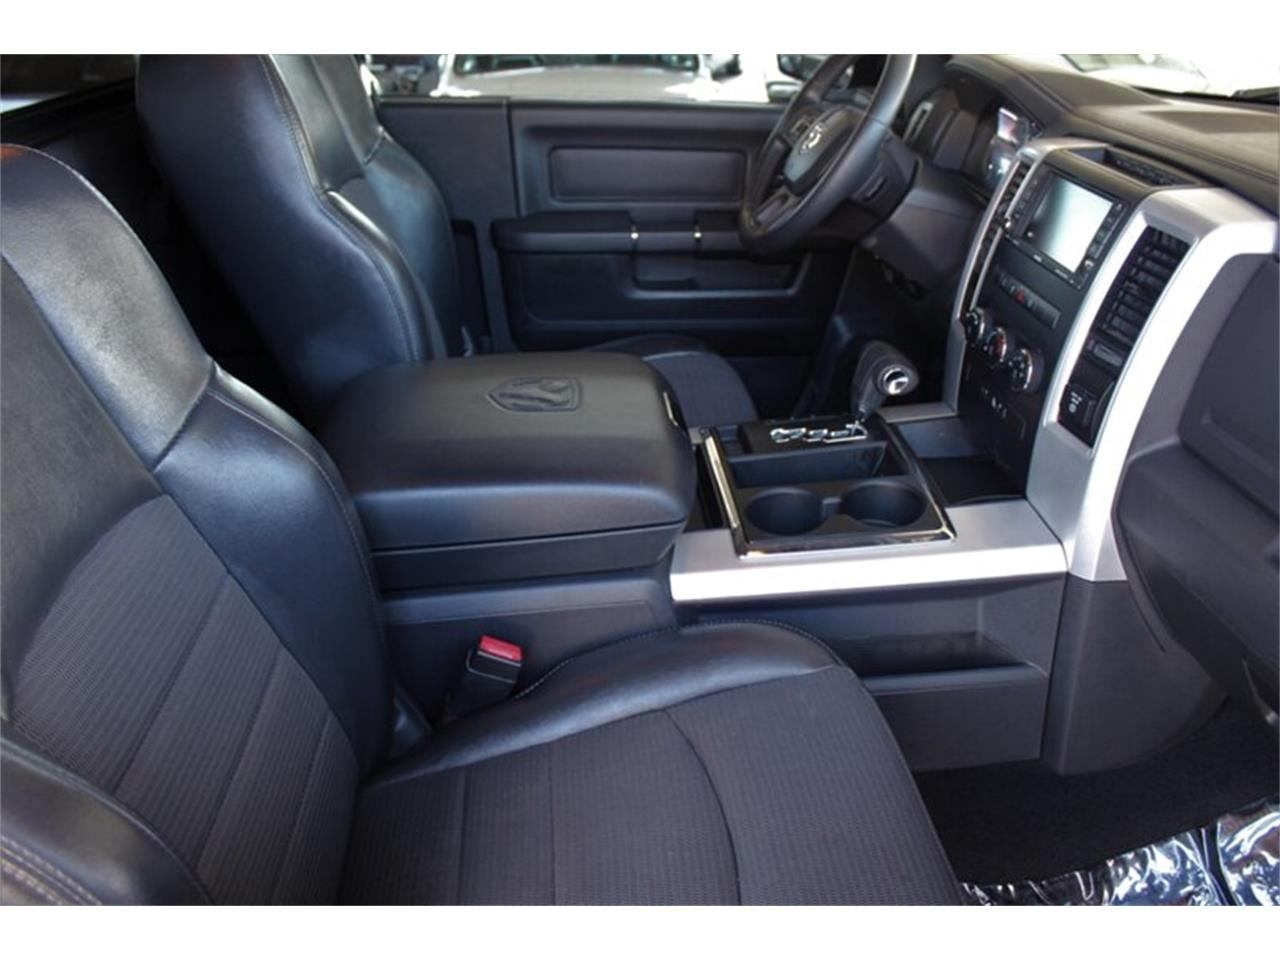 2012 Dodge Ram For Sale In Sherman Oaks, CA